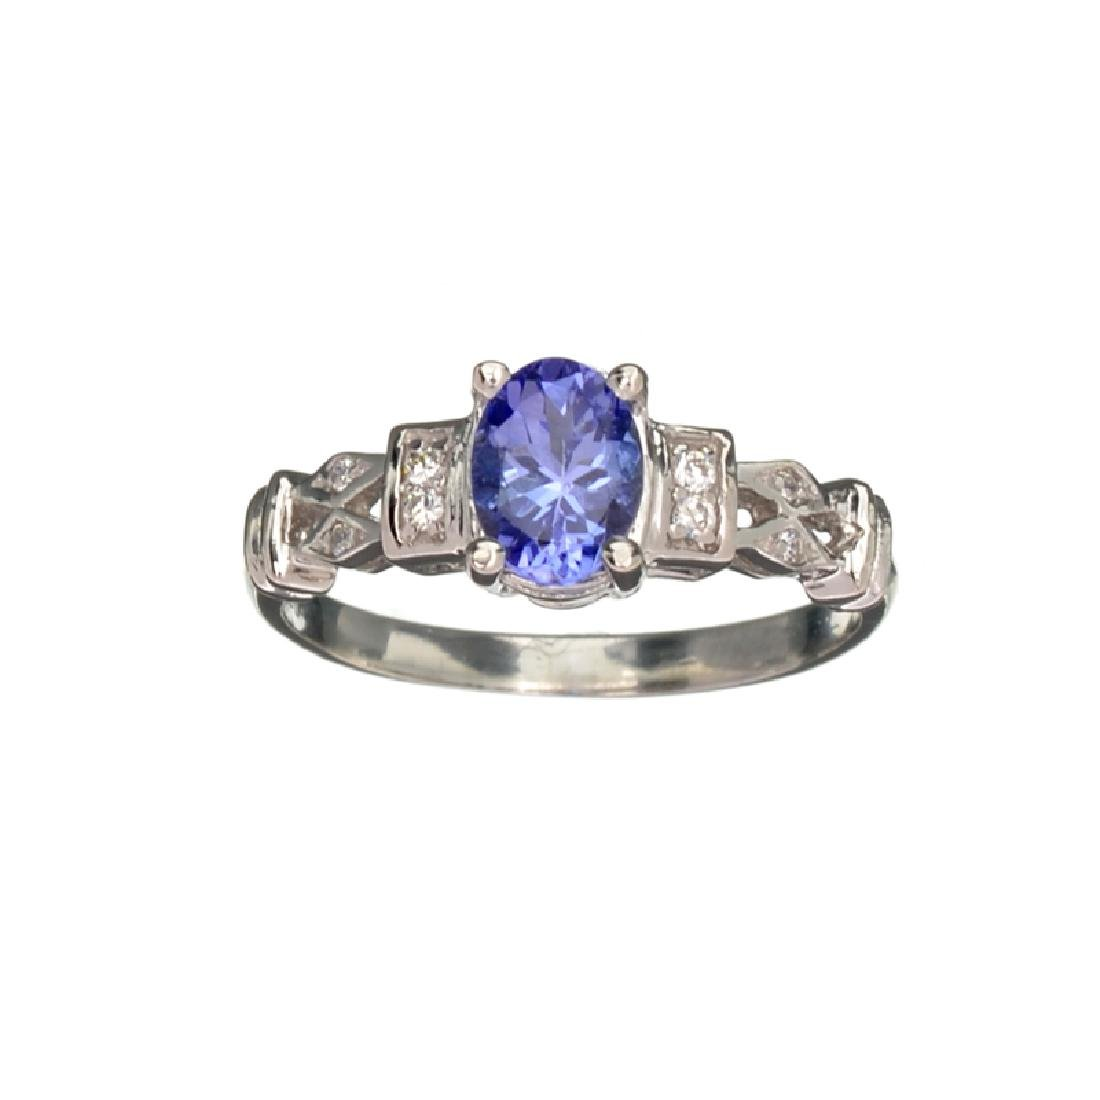 APP: 1.5k Fine Jewelry 14 KT White Gold, 1.01CT Violet